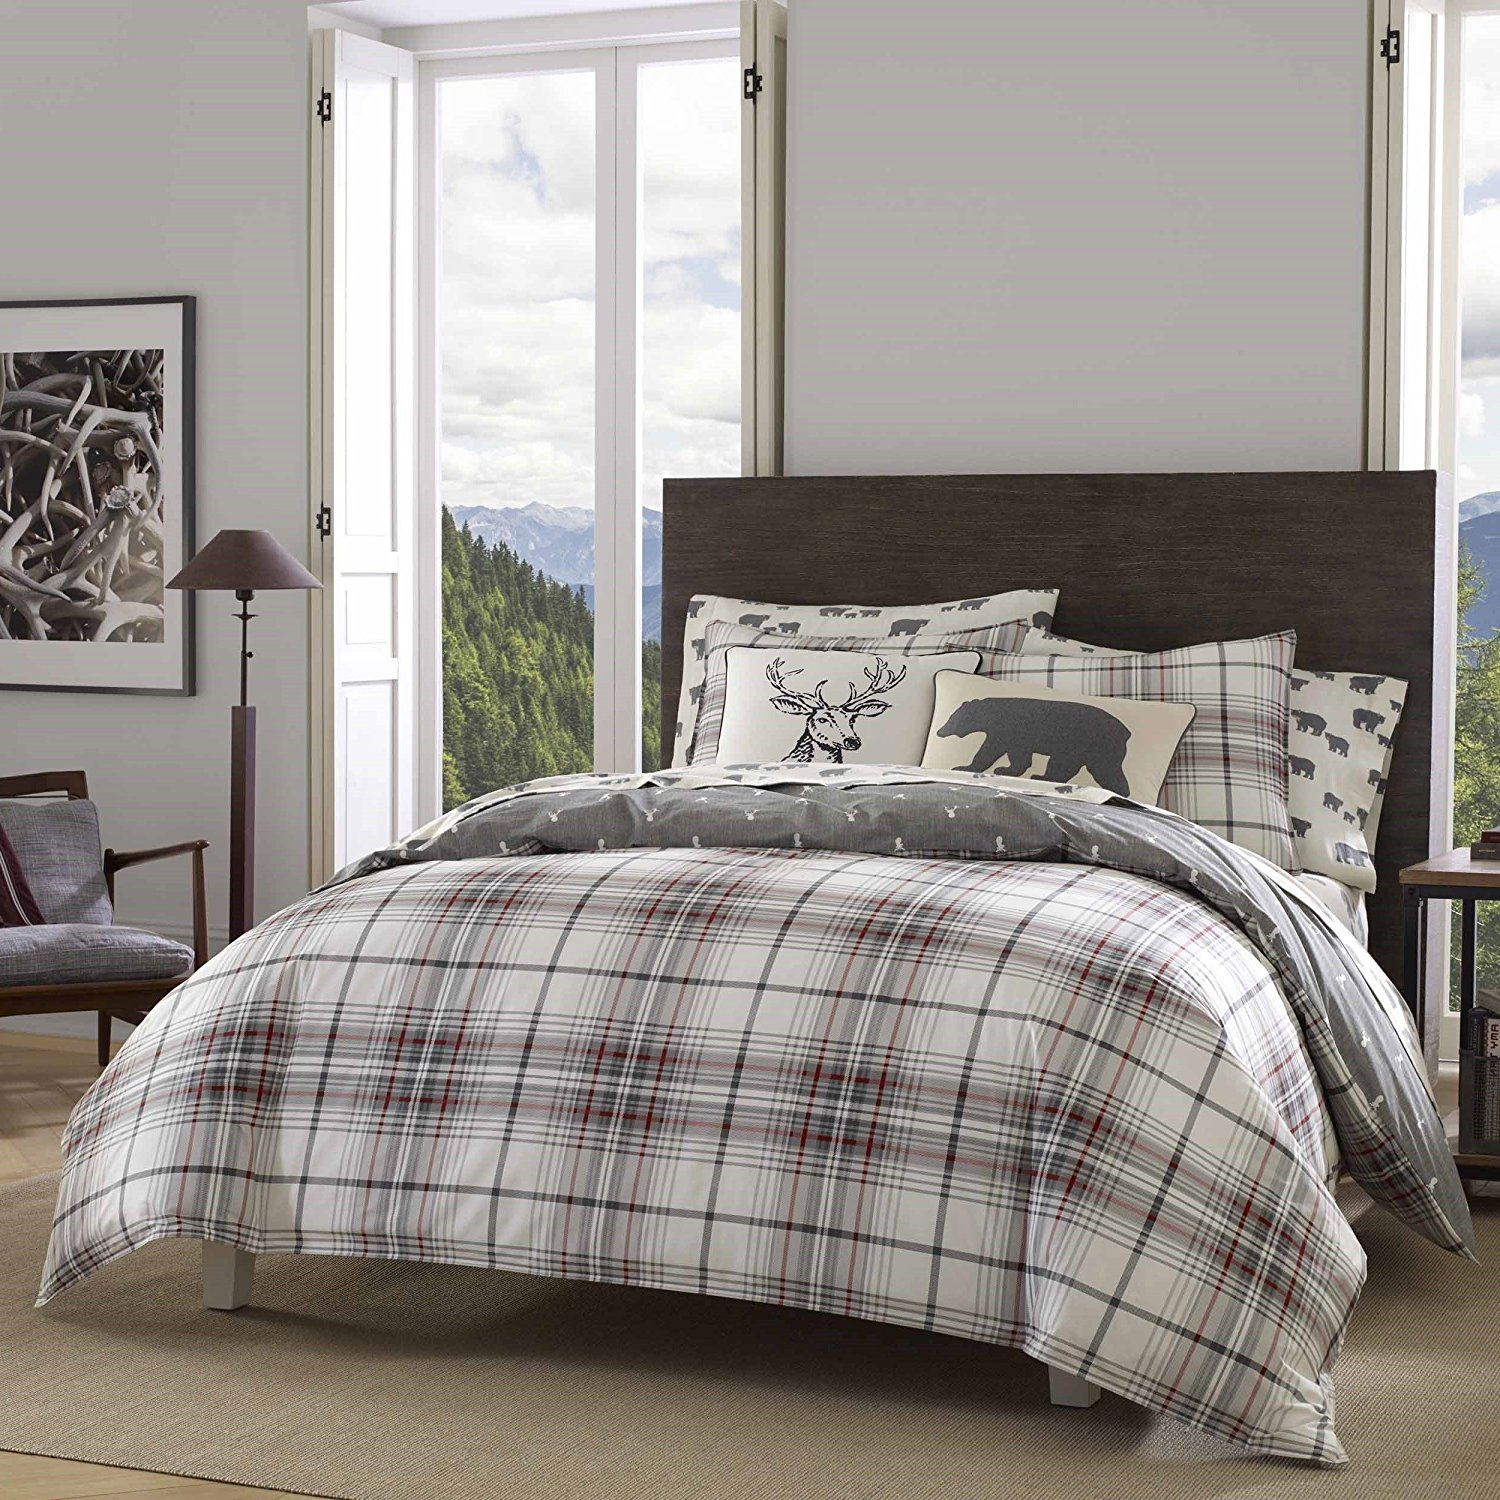 3 Piece Red Plaid Full Queen Size Duvet Cover Set Cabin Themed Lodge Country